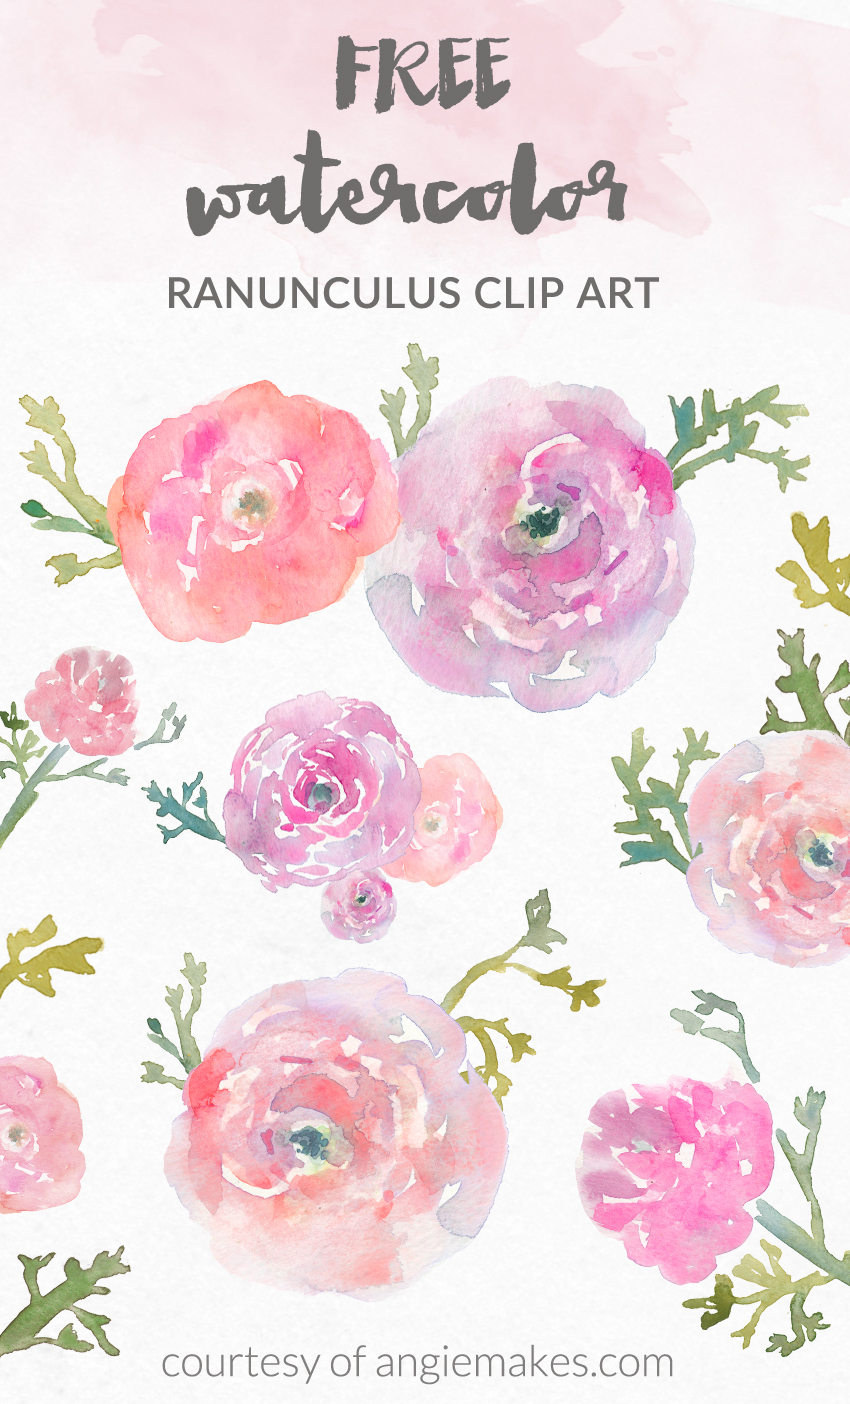 Art flowers pictures free picture royalty free library Angie Makes - Free Watercolor Flower ClipArt picture royalty free library